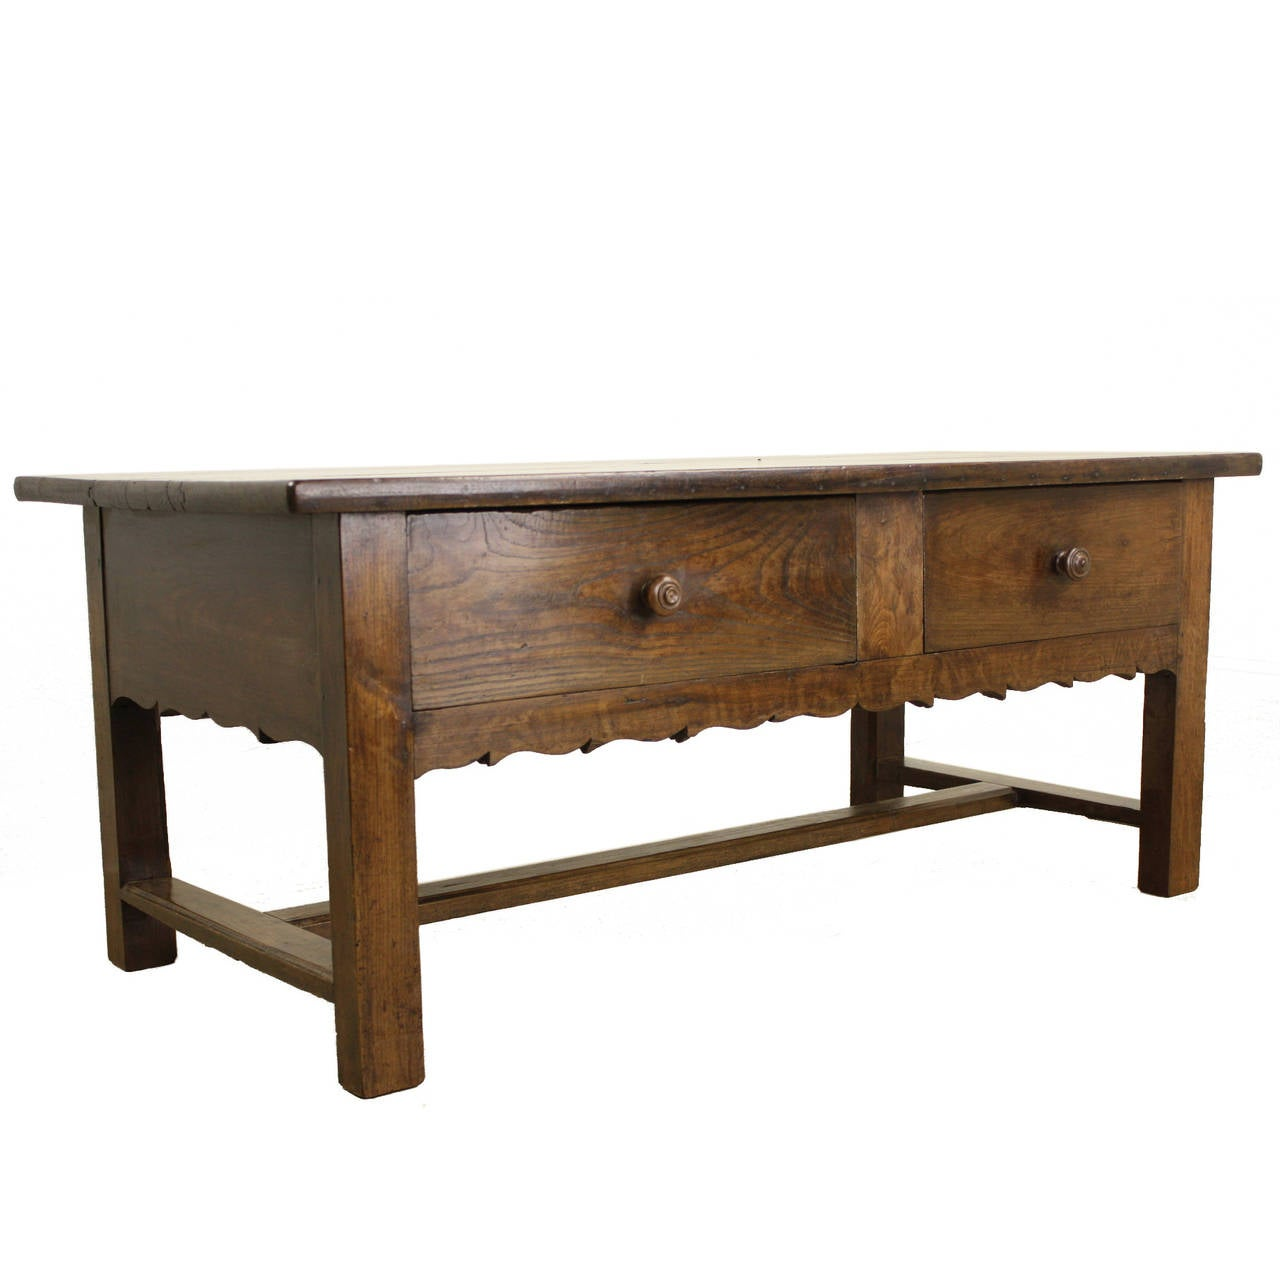 Antique French Chestnut Coffee Table Stretcher And Shaped Apron At 1stdibs